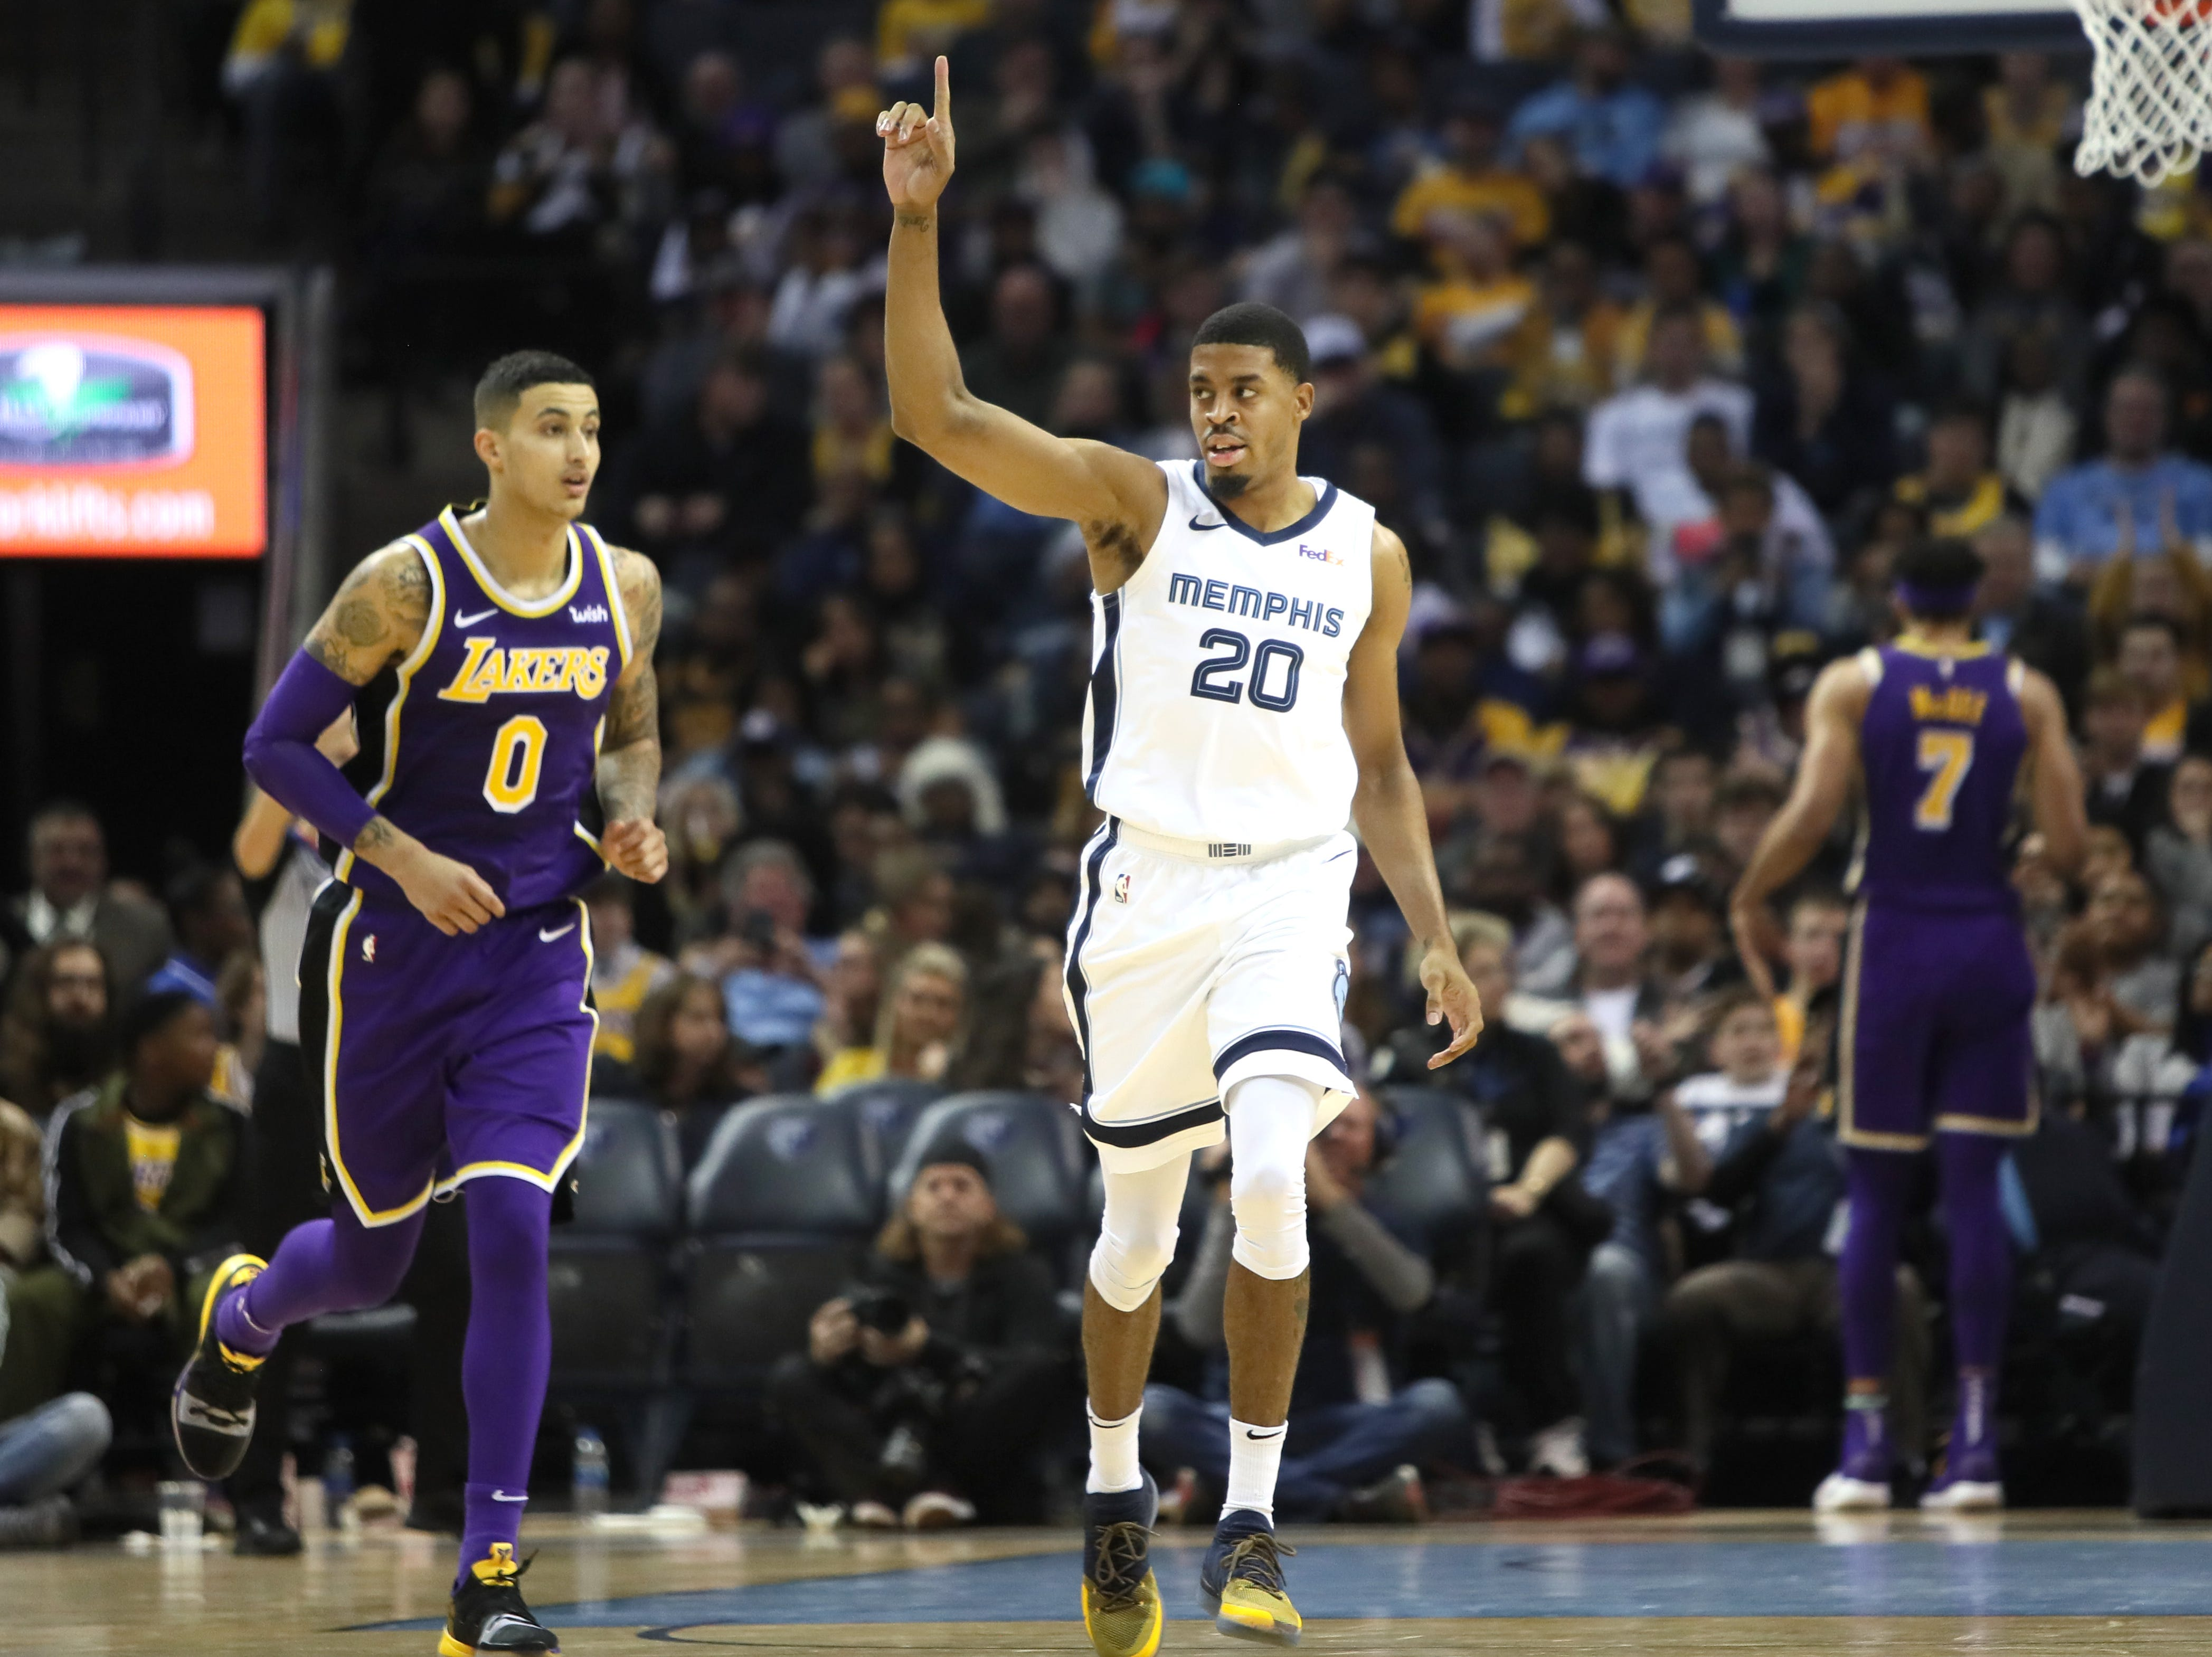 Memphis Grizzlies guard DJ Stephens celebrates his dunk against the Los Angeles Lakers during their game at the FedExForum on Saturday, Dec. 8, 2018.